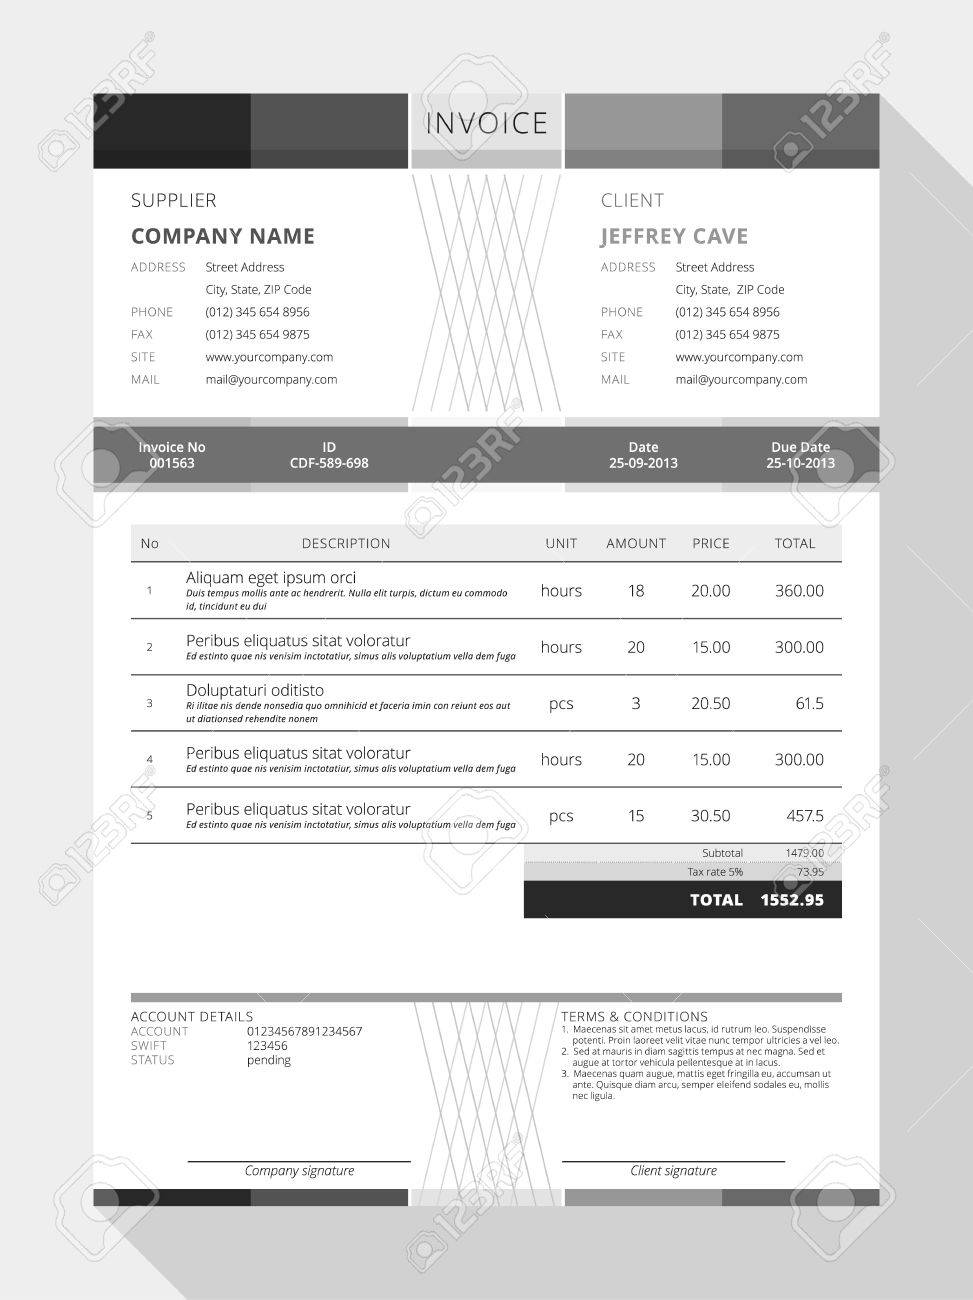 Reliefworkersus  Inspiring Design An Invoice  Professional Graphic Design Invoice  With Foxy Vector Customizable Invoice Form Template Design Vector   Design An Invoice With Amusing My Invoice Dfas Also Microsoft Office Invoice Templates In Addition Define Invoicing And Invoice Loans As Well As Invoice Numbering System Additionally Mazda Cx Invoice From Happytomco With Reliefworkersus  Foxy Design An Invoice  Professional Graphic Design Invoice  With Amusing Vector Customizable Invoice Form Template Design Vector   Design An Invoice And Inspiring My Invoice Dfas Also Microsoft Office Invoice Templates In Addition Define Invoicing From Happytomco